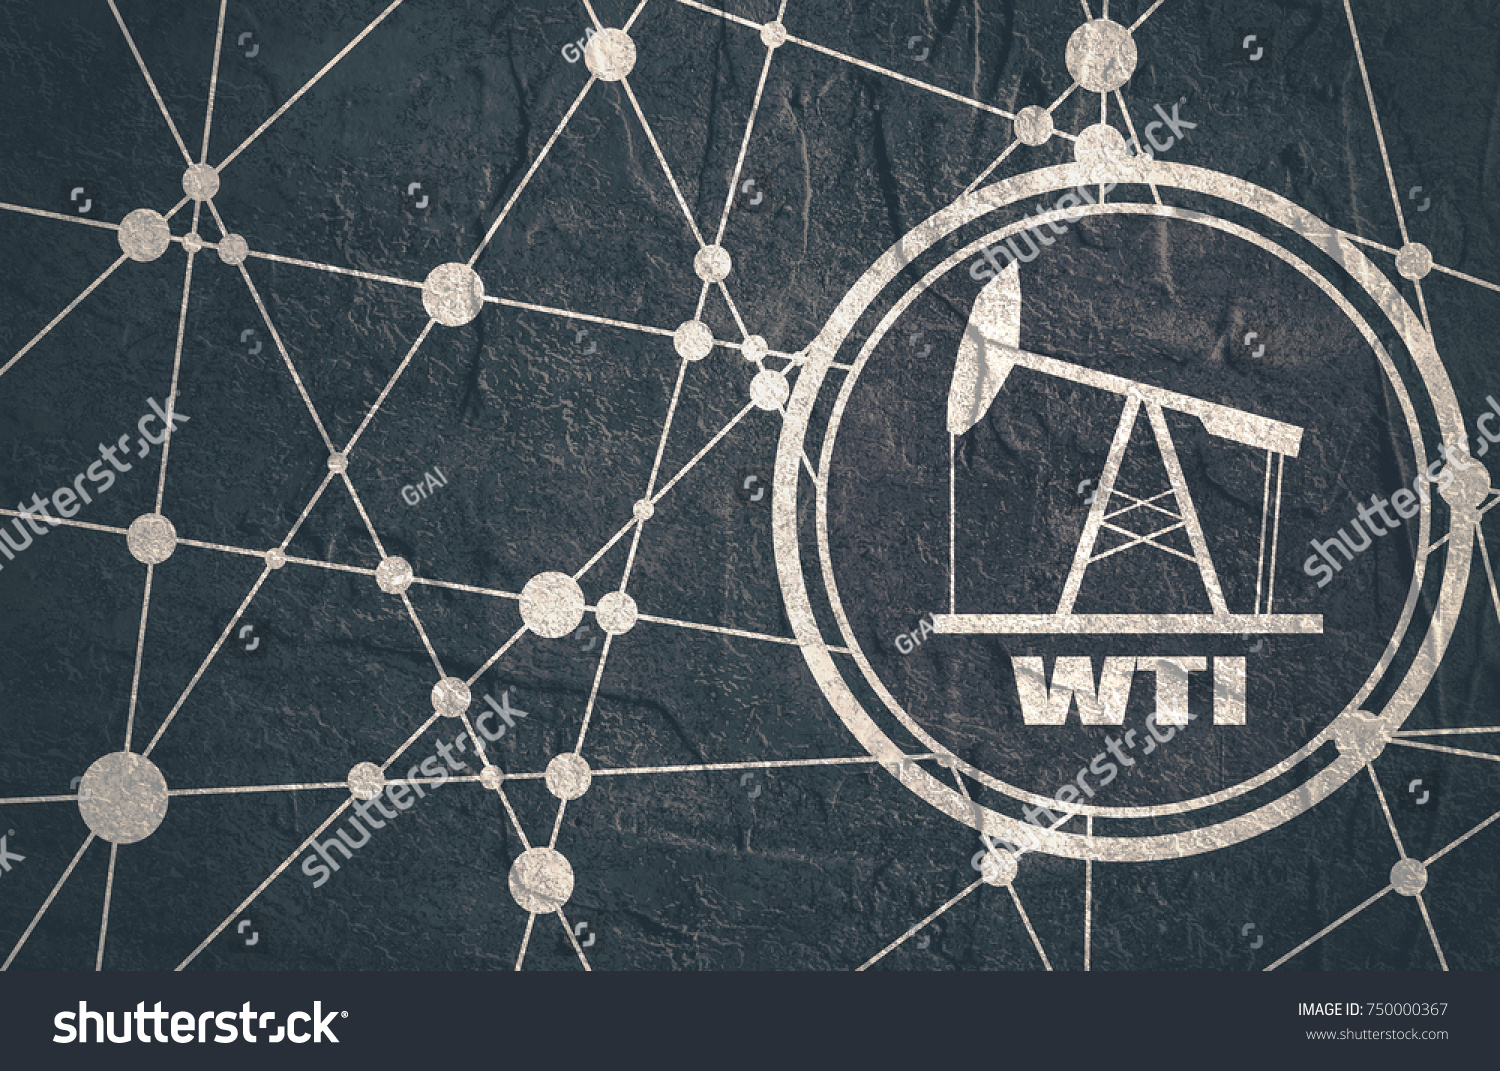 Oil pump icon wti crude oil stock illustration 750000367 shutterstock oil pump icon and wti crude oil name energy and power relative backdrop molecule biocorpaavc Image collections